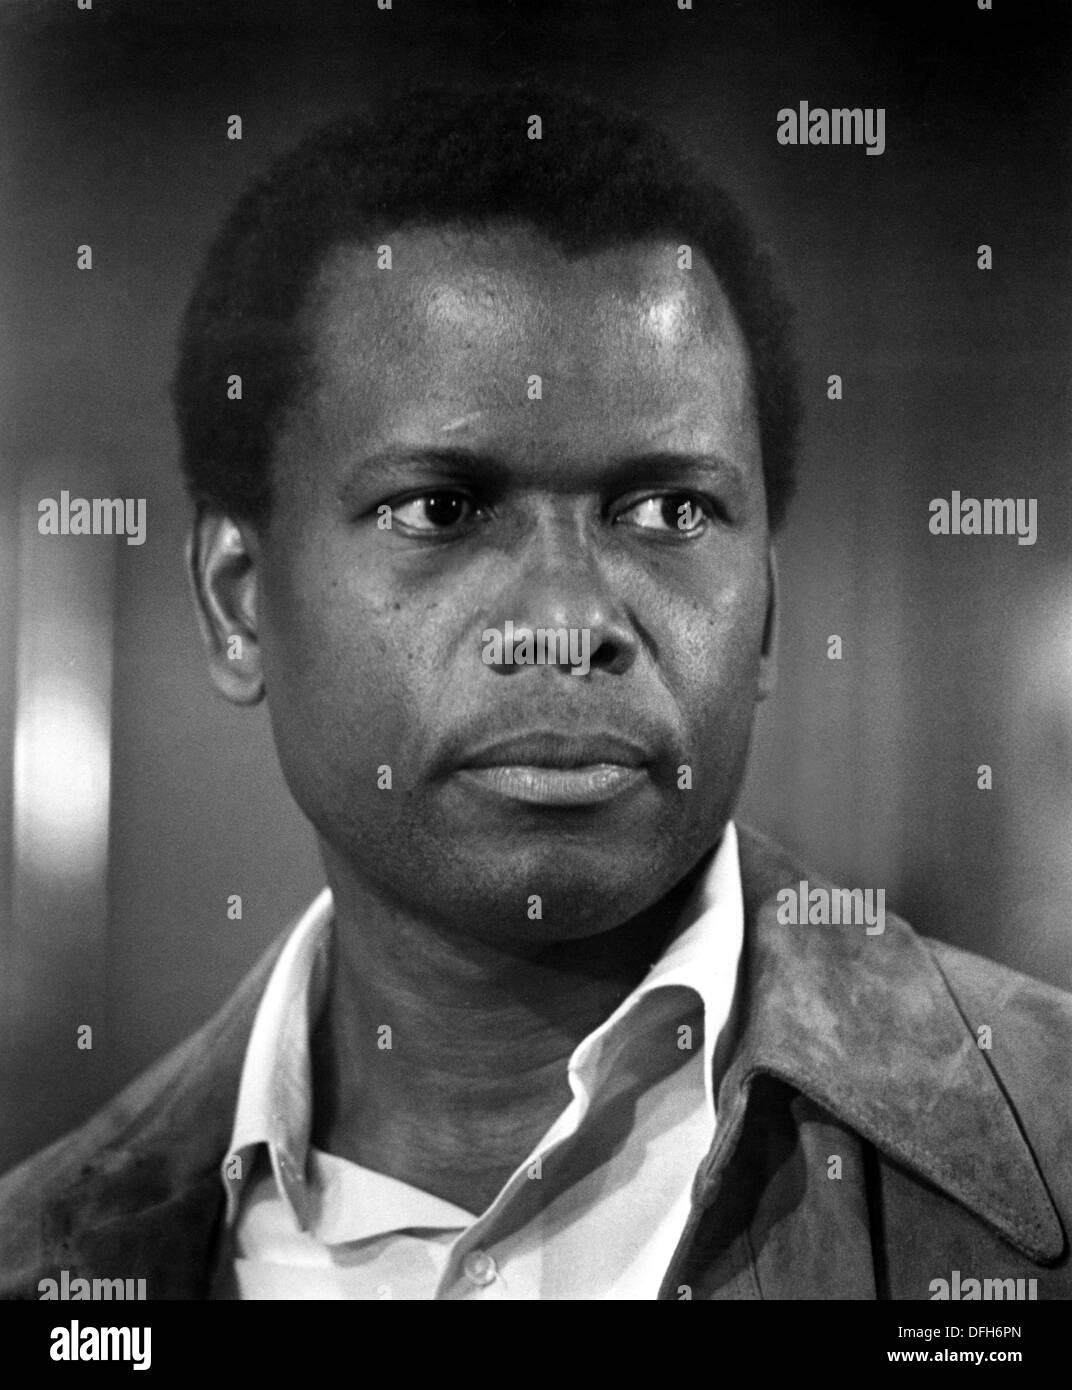 Sidney Poitier on-set of the Film, A Piece of the Action, 1977 - Stock Image